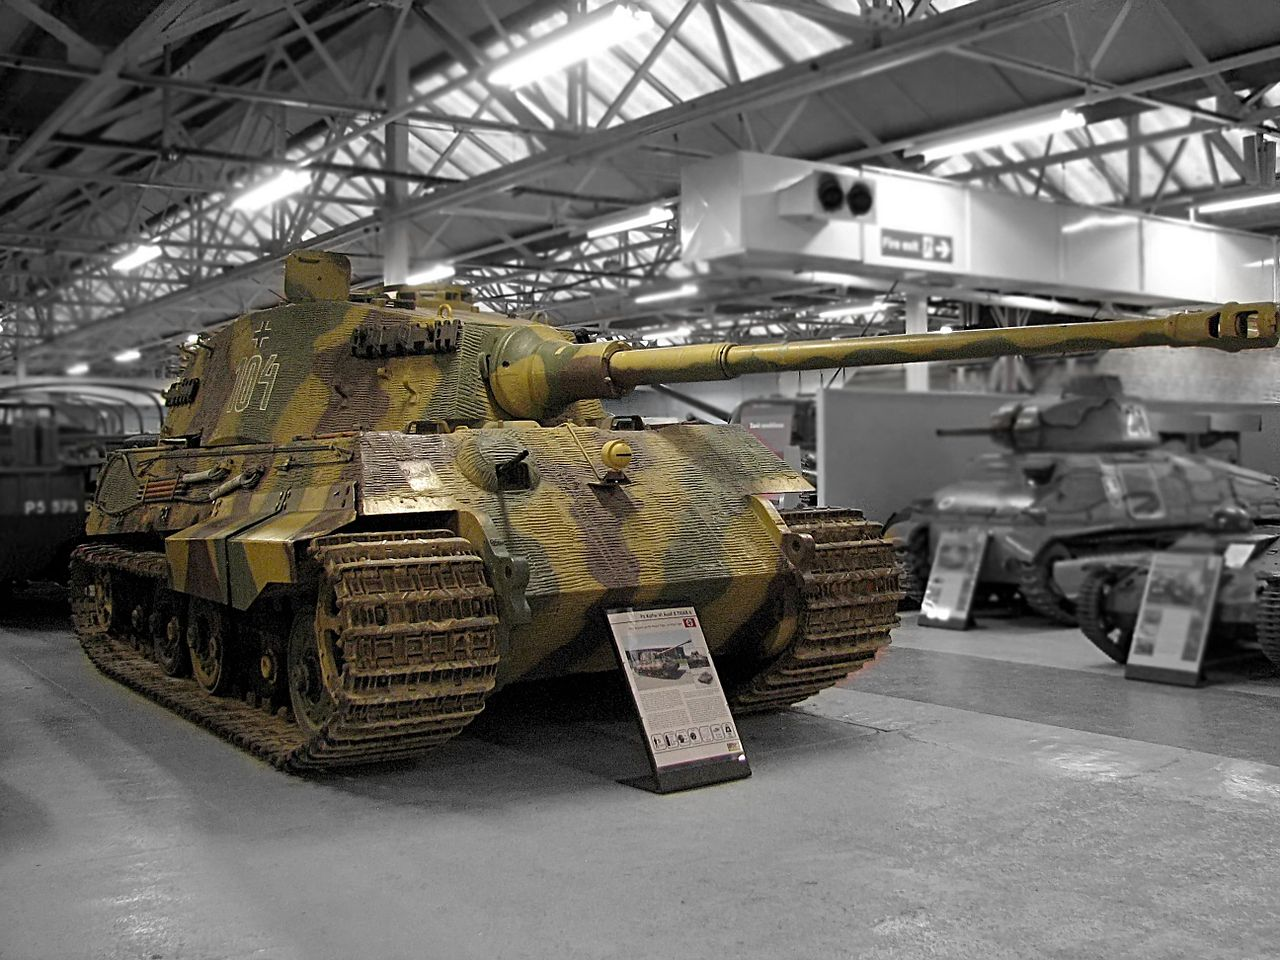 A large, turreted tank with dull yellow, green and brown wavy camouflage, on display inside Bovington museum. The tracks are wide, and the frontal armour is sloped. The long gun overhangs the bow by several meters.